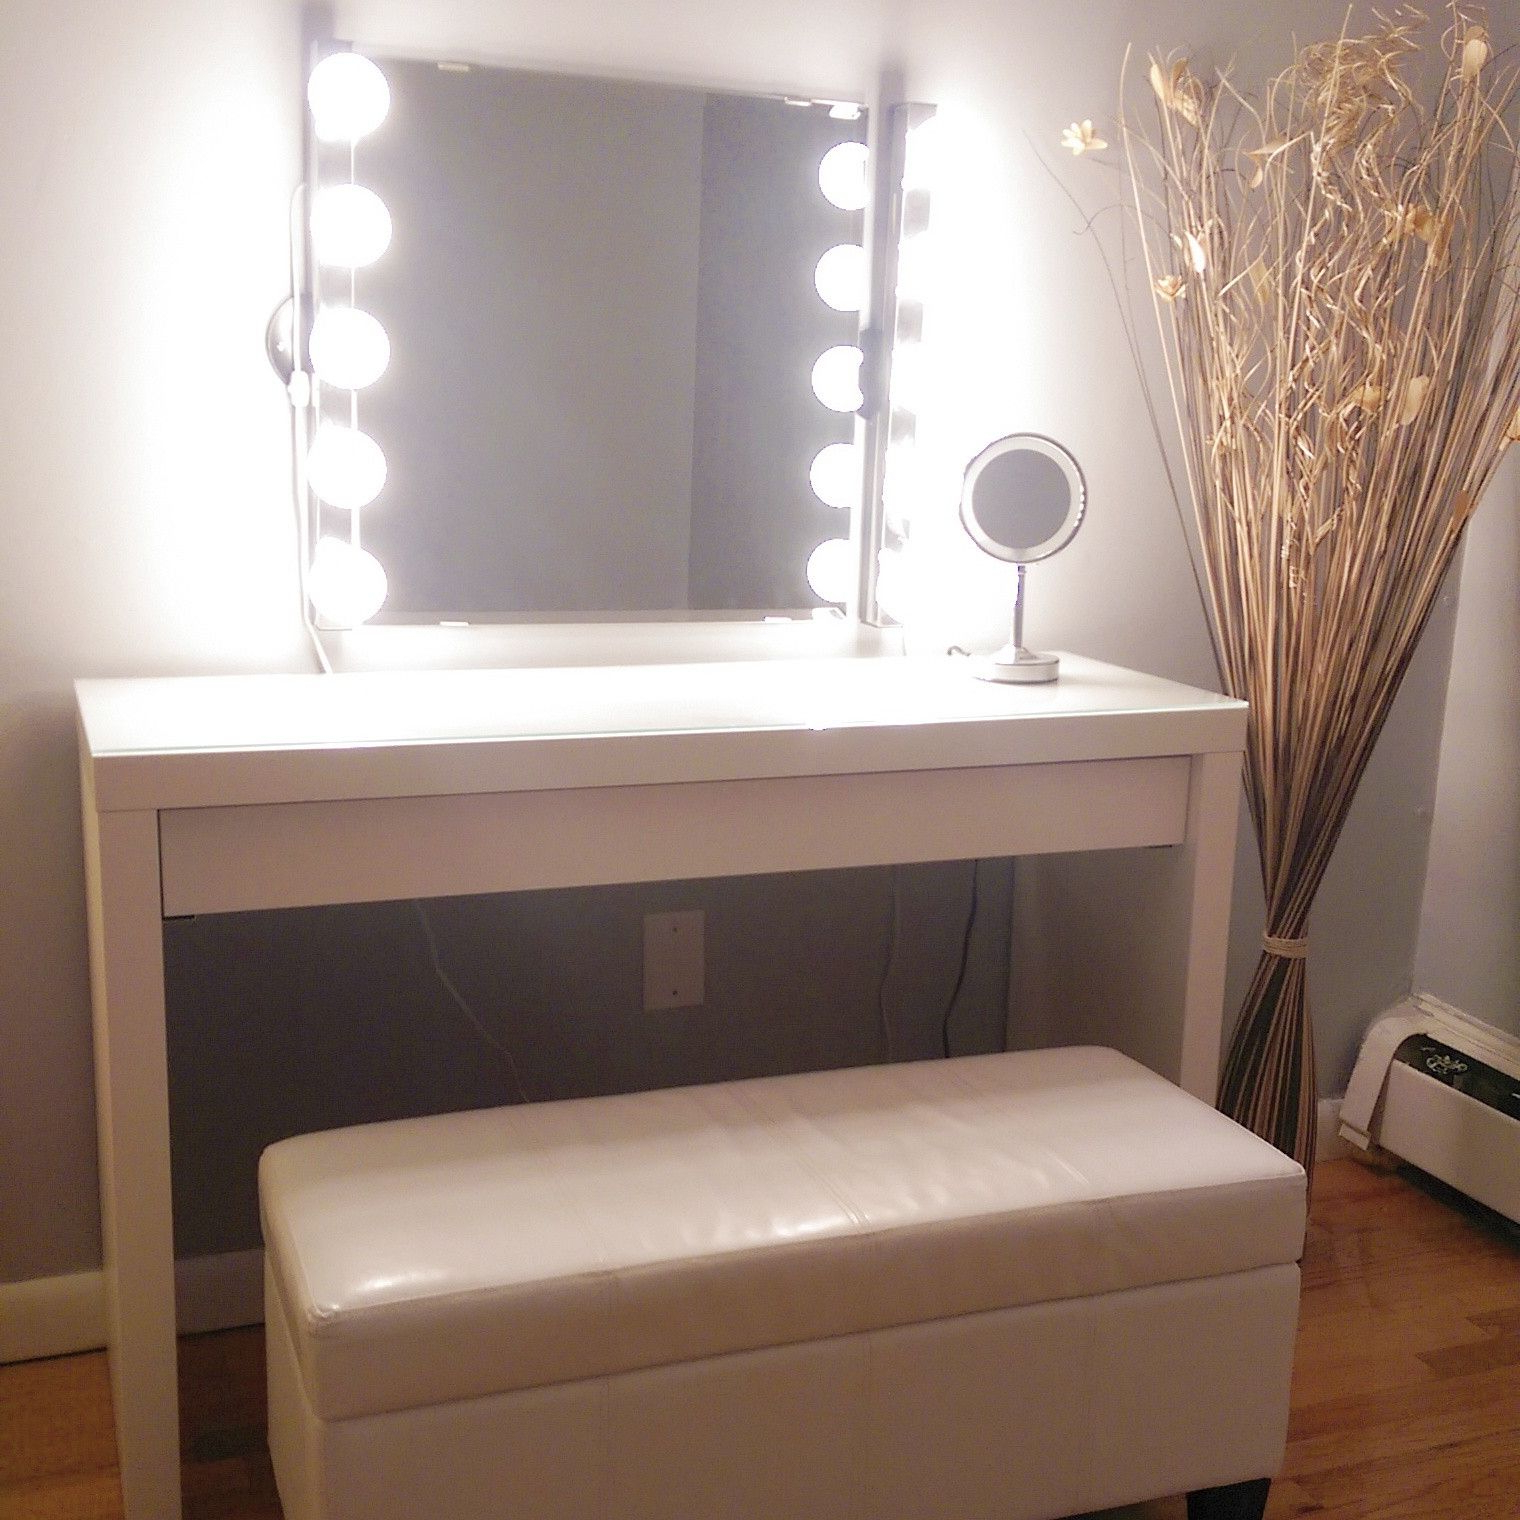 Ikea Mirror For Wall Mirrors With Light Bulbs (View 3 of 20)